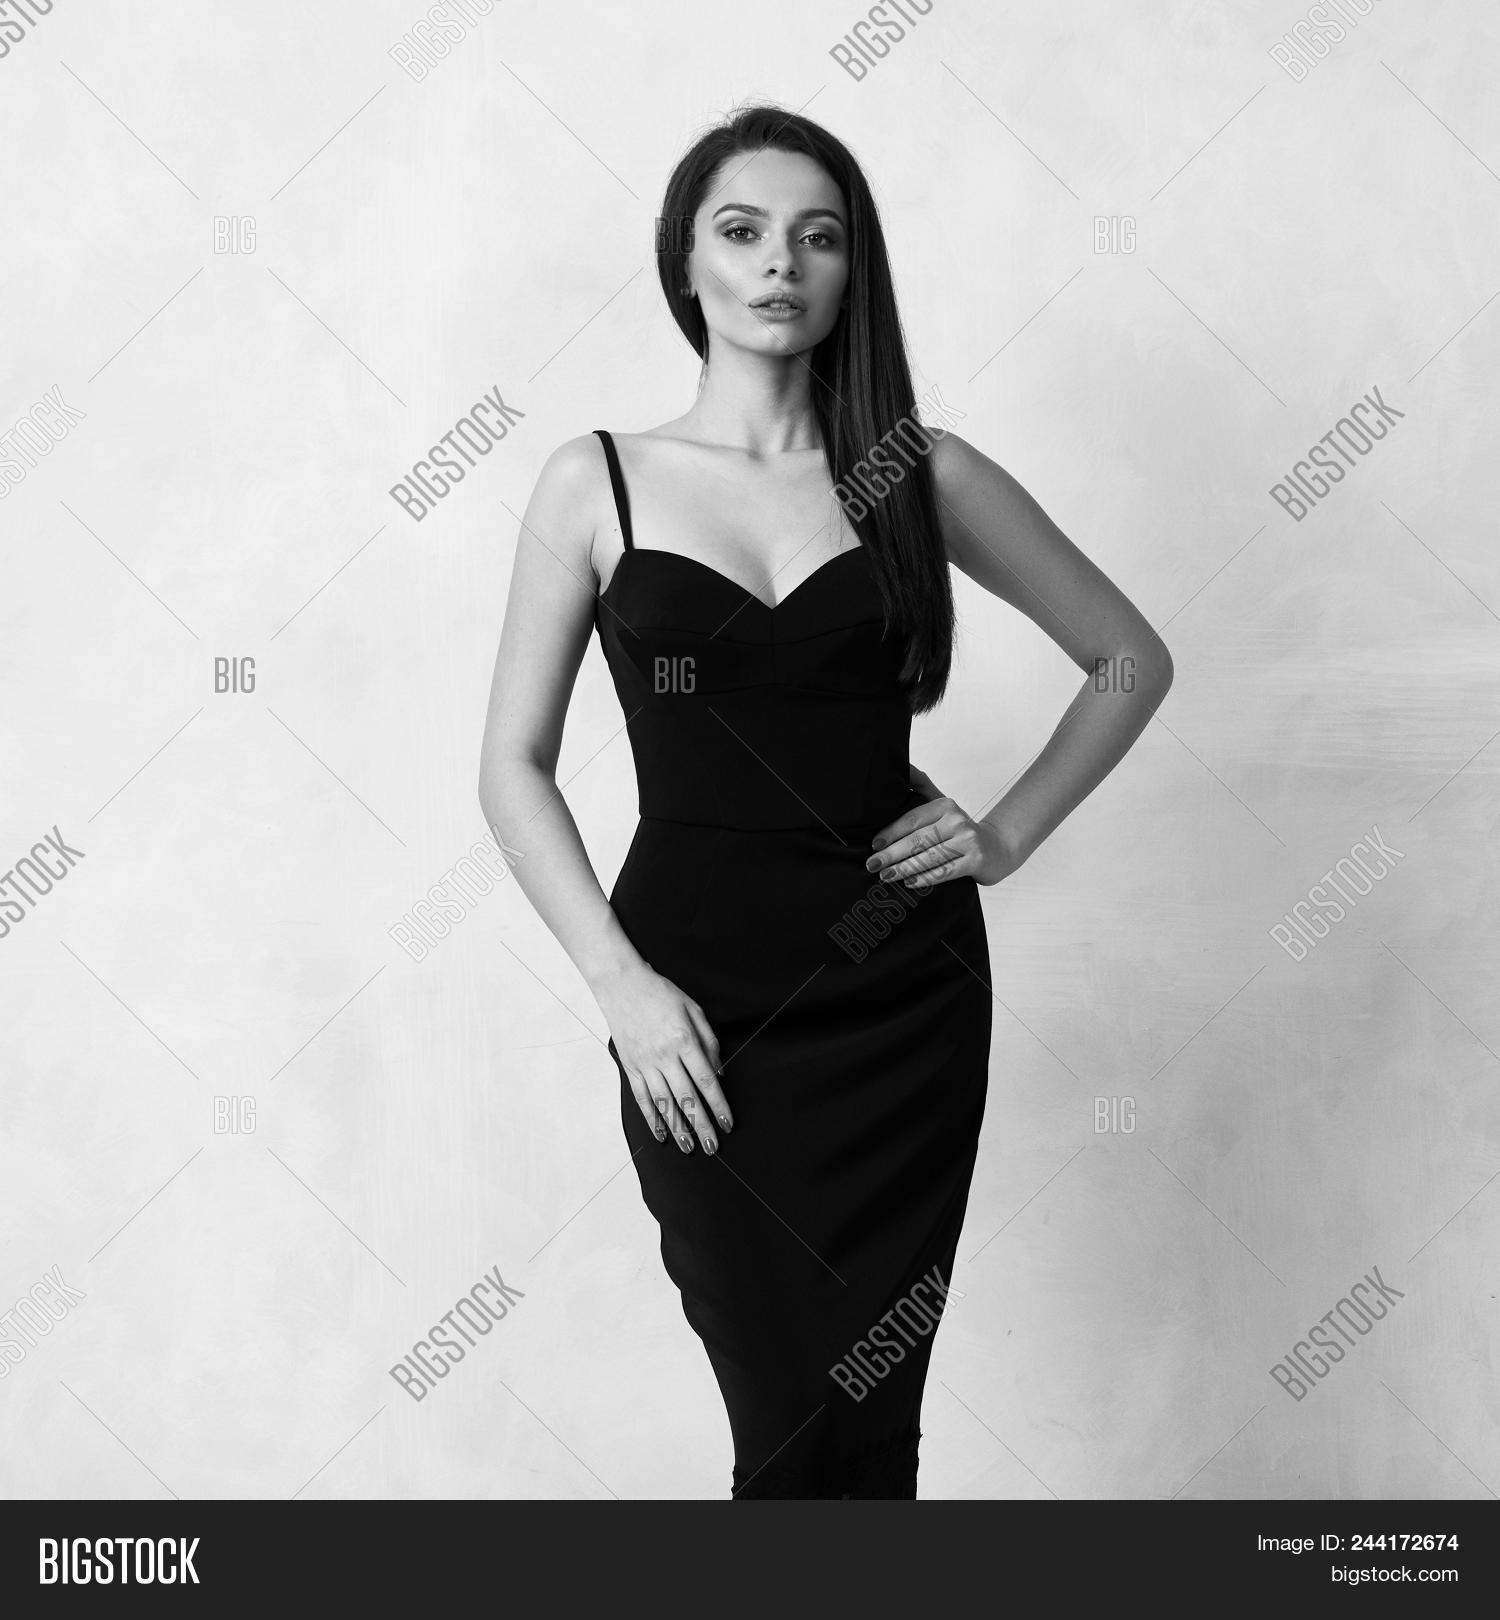 e40b4f7944 Beautiful Female Model With Long Brunette Hair Demonstrating Black Bodycon  Dress With Straps And Lac